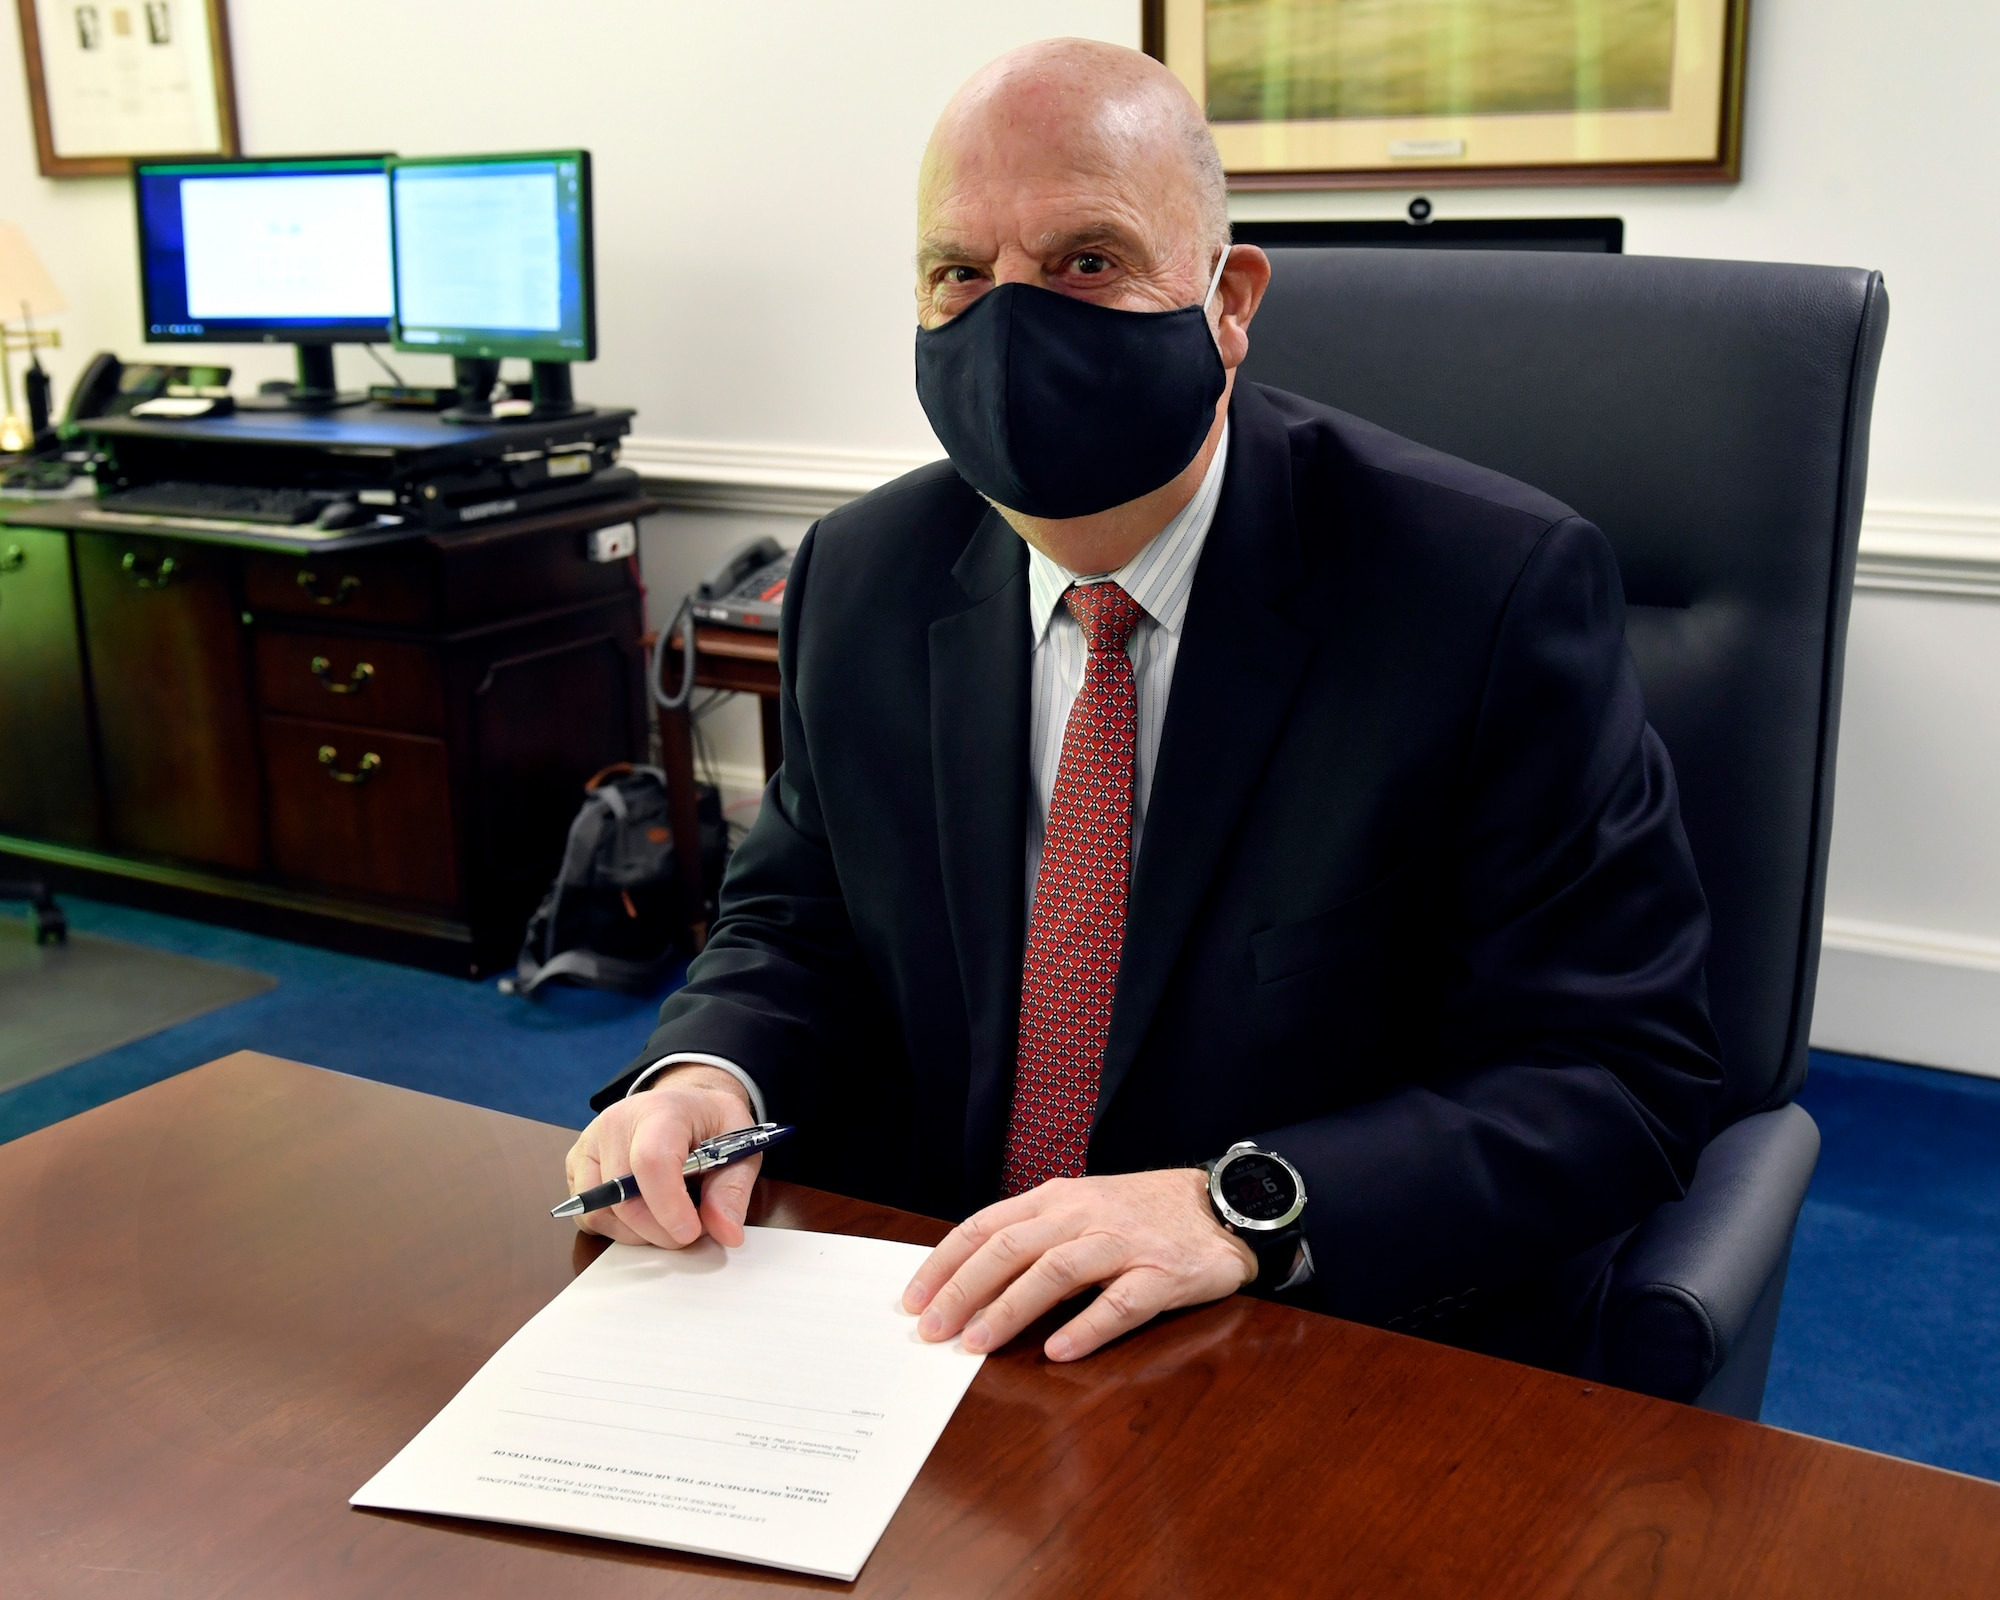 Acting Secretary of the Air Force John P. Roth prepares to sign a letter of intent for continued U.S. support of the Arctic Challenge exercise, one of Europe's largest tactical air exercises.